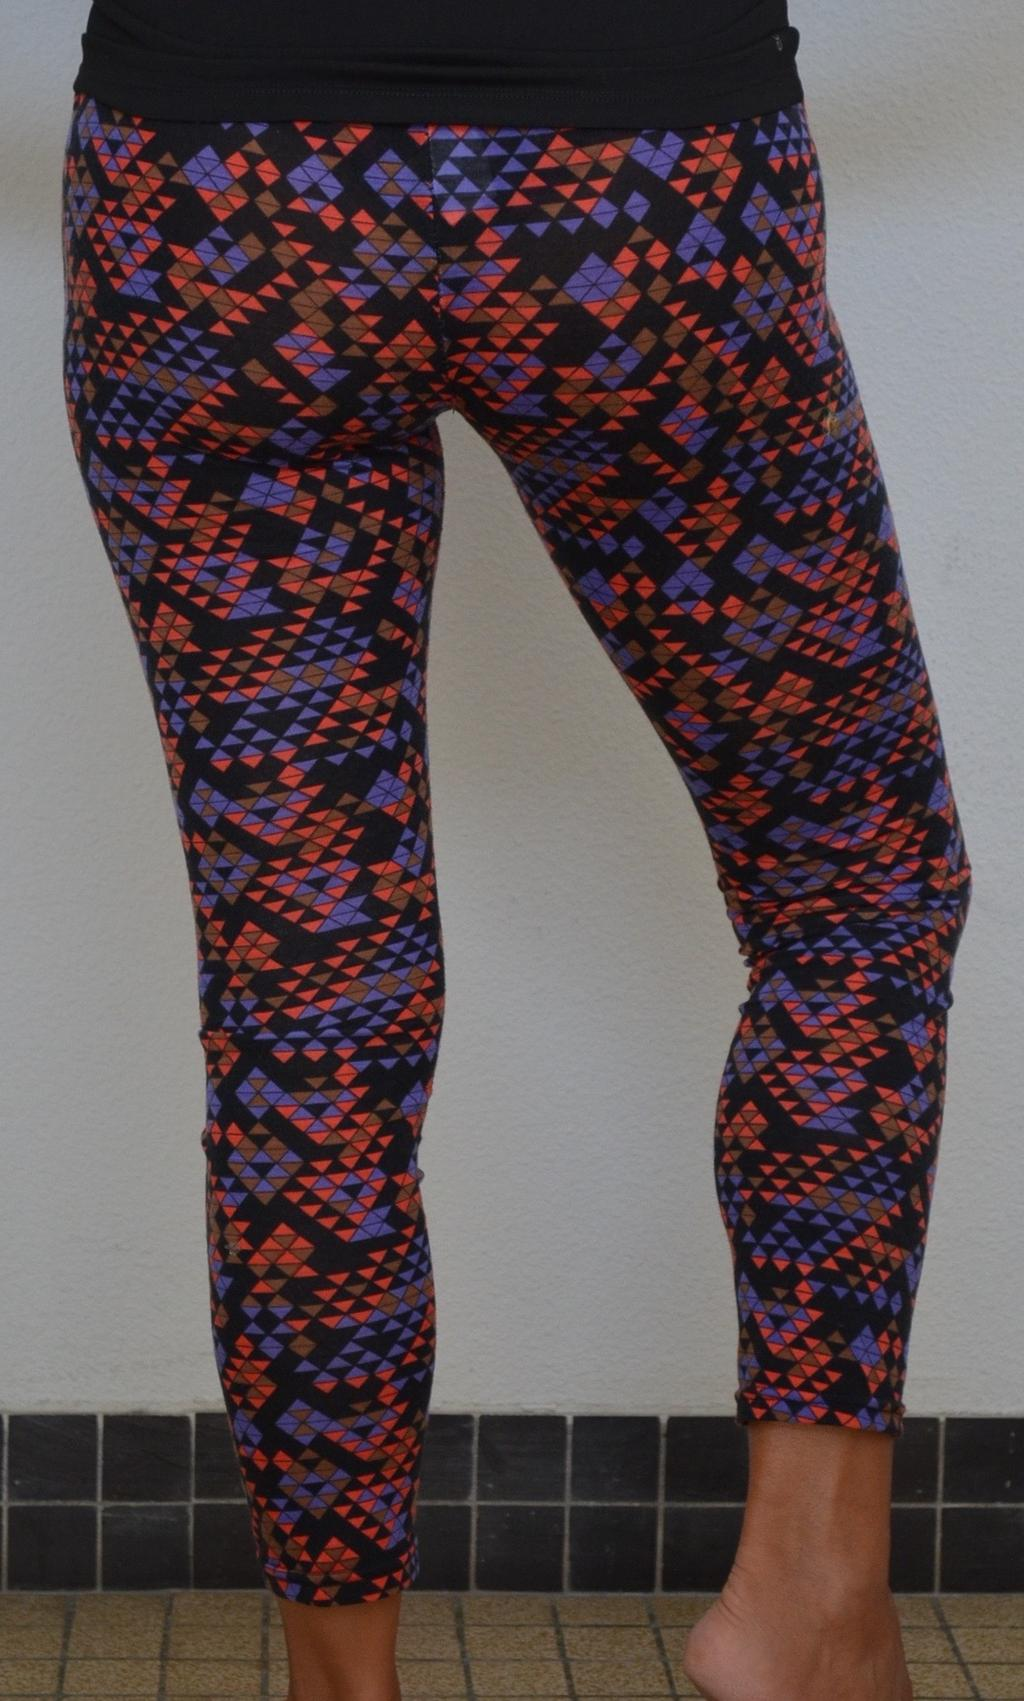 strech Réf : 229 23 leggings